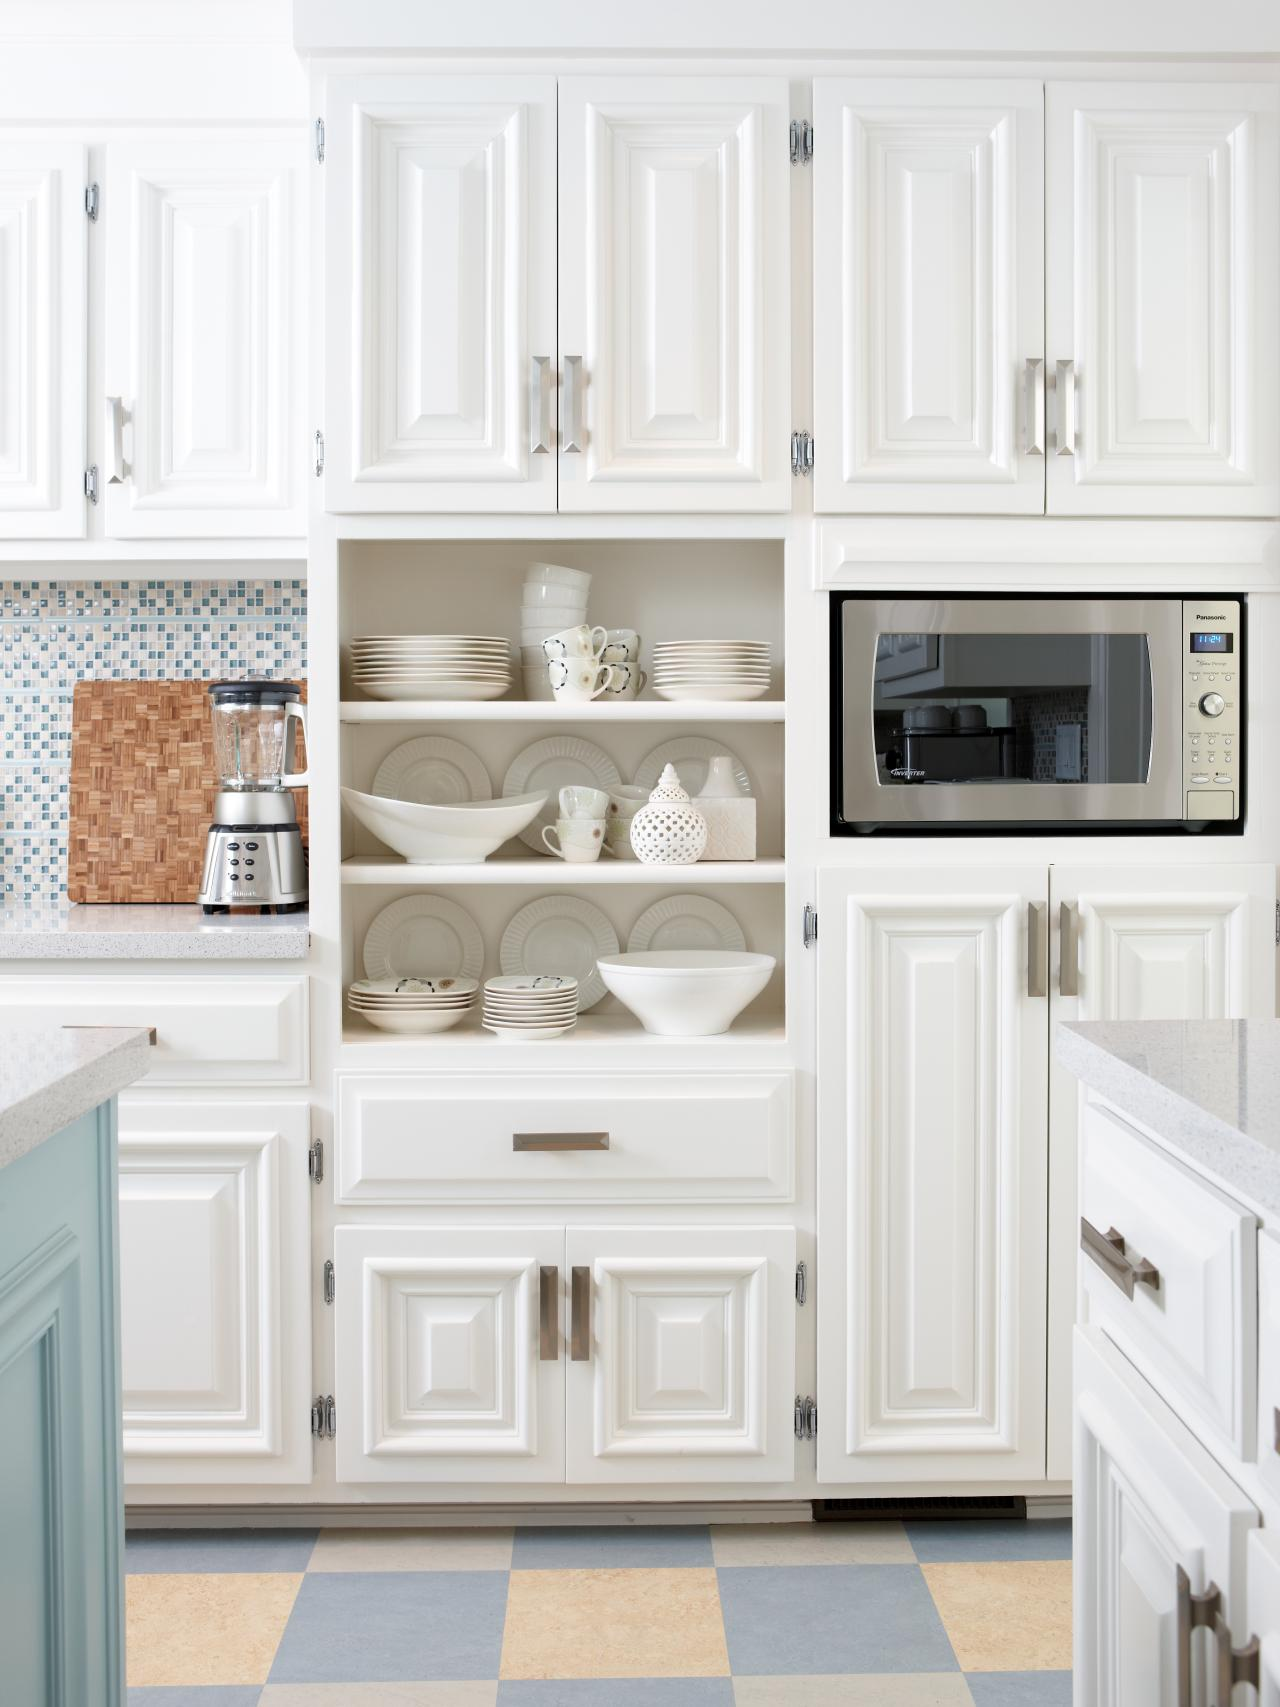 DIY Kitchen Cabinets HGTV & Do It Yourself Ideas